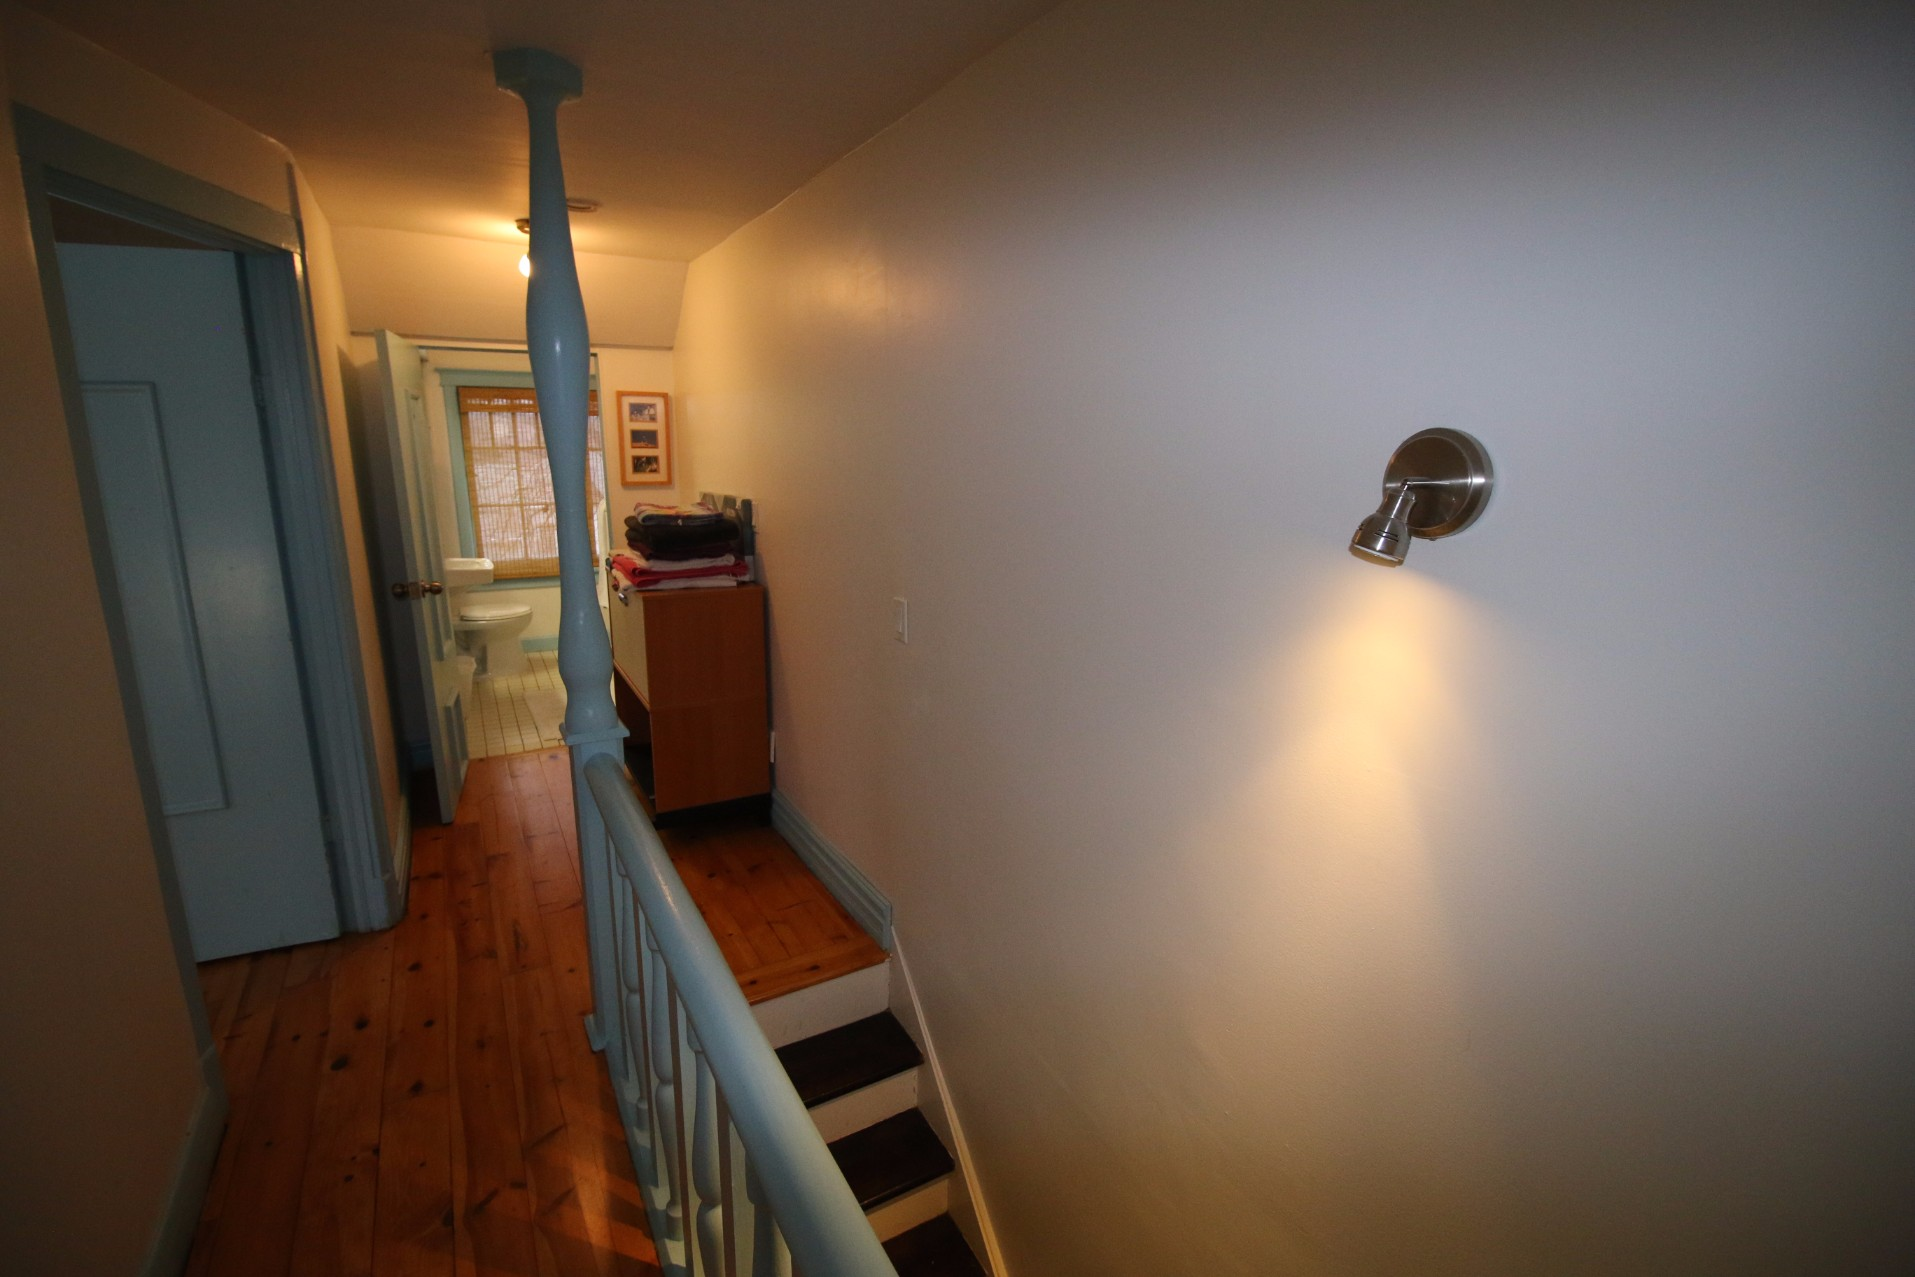 23 Peter Street South,Toronto,2 Bedrooms Bedrooms,1 BathroomBathrooms,House,Peter Street South,1023